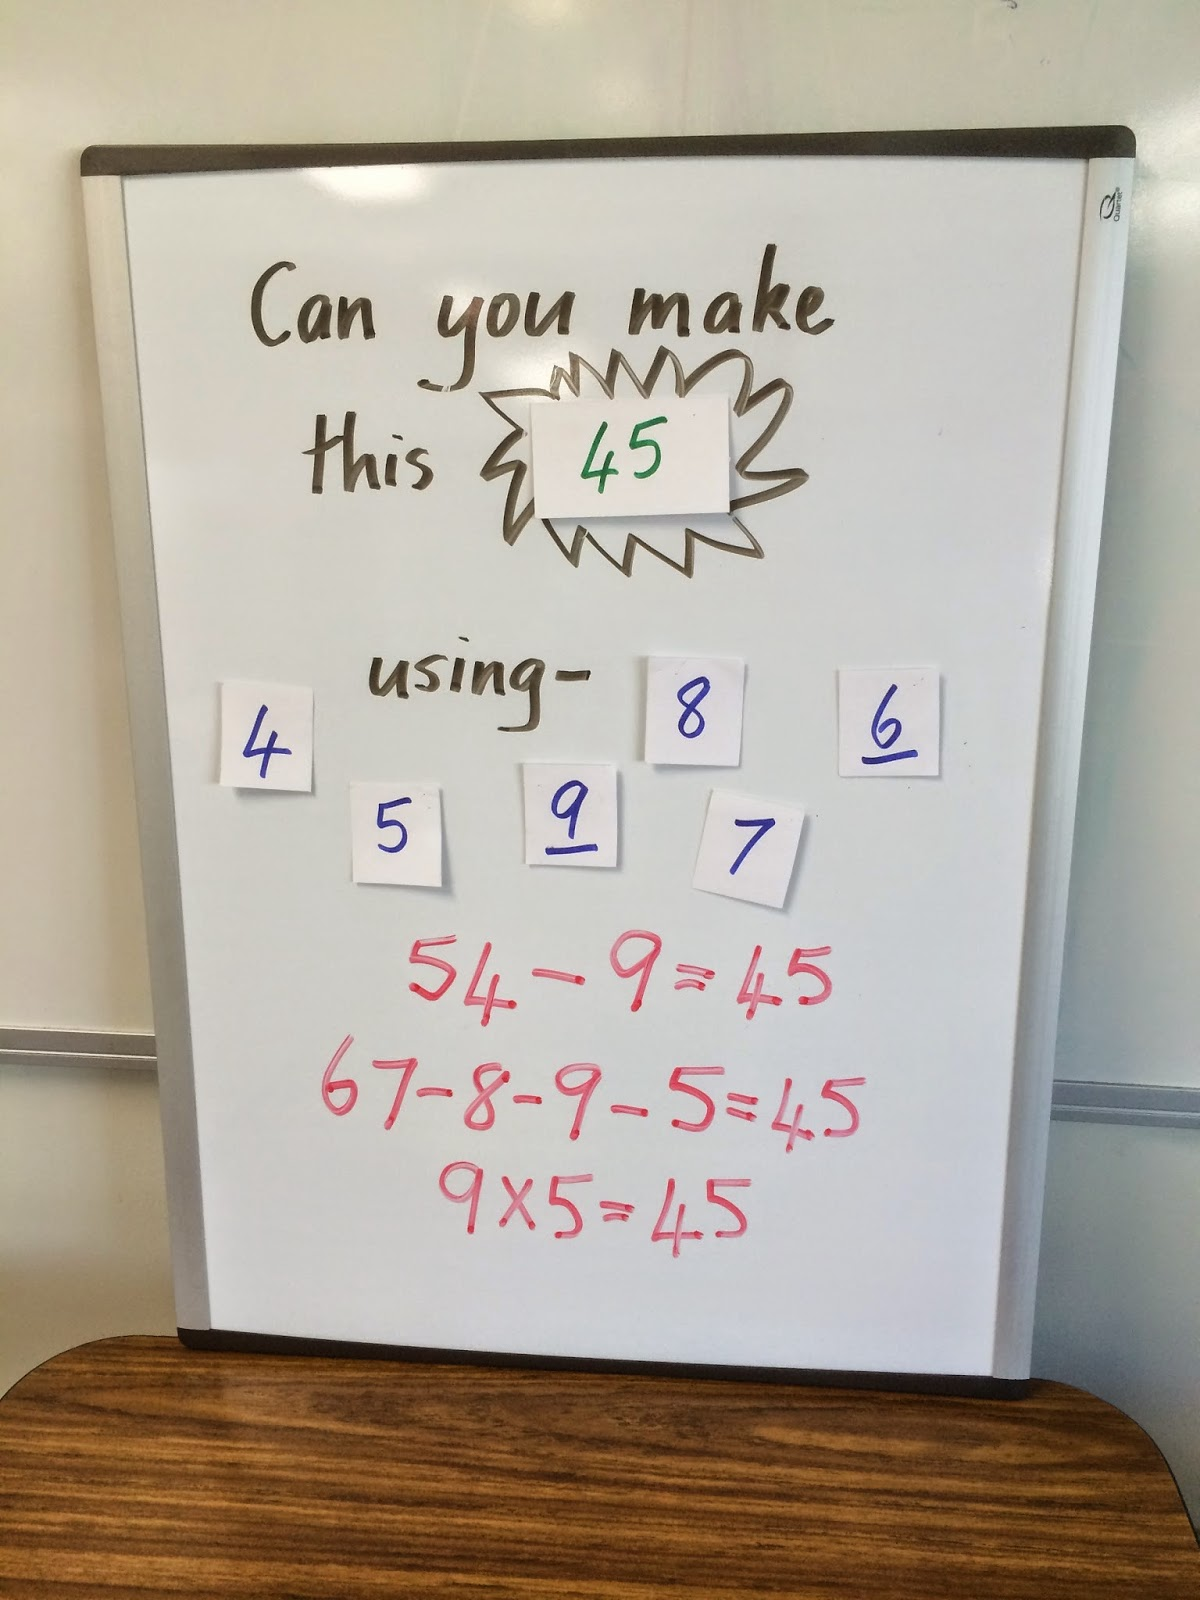 Fun Games 4 Learning Math To Make Them Think